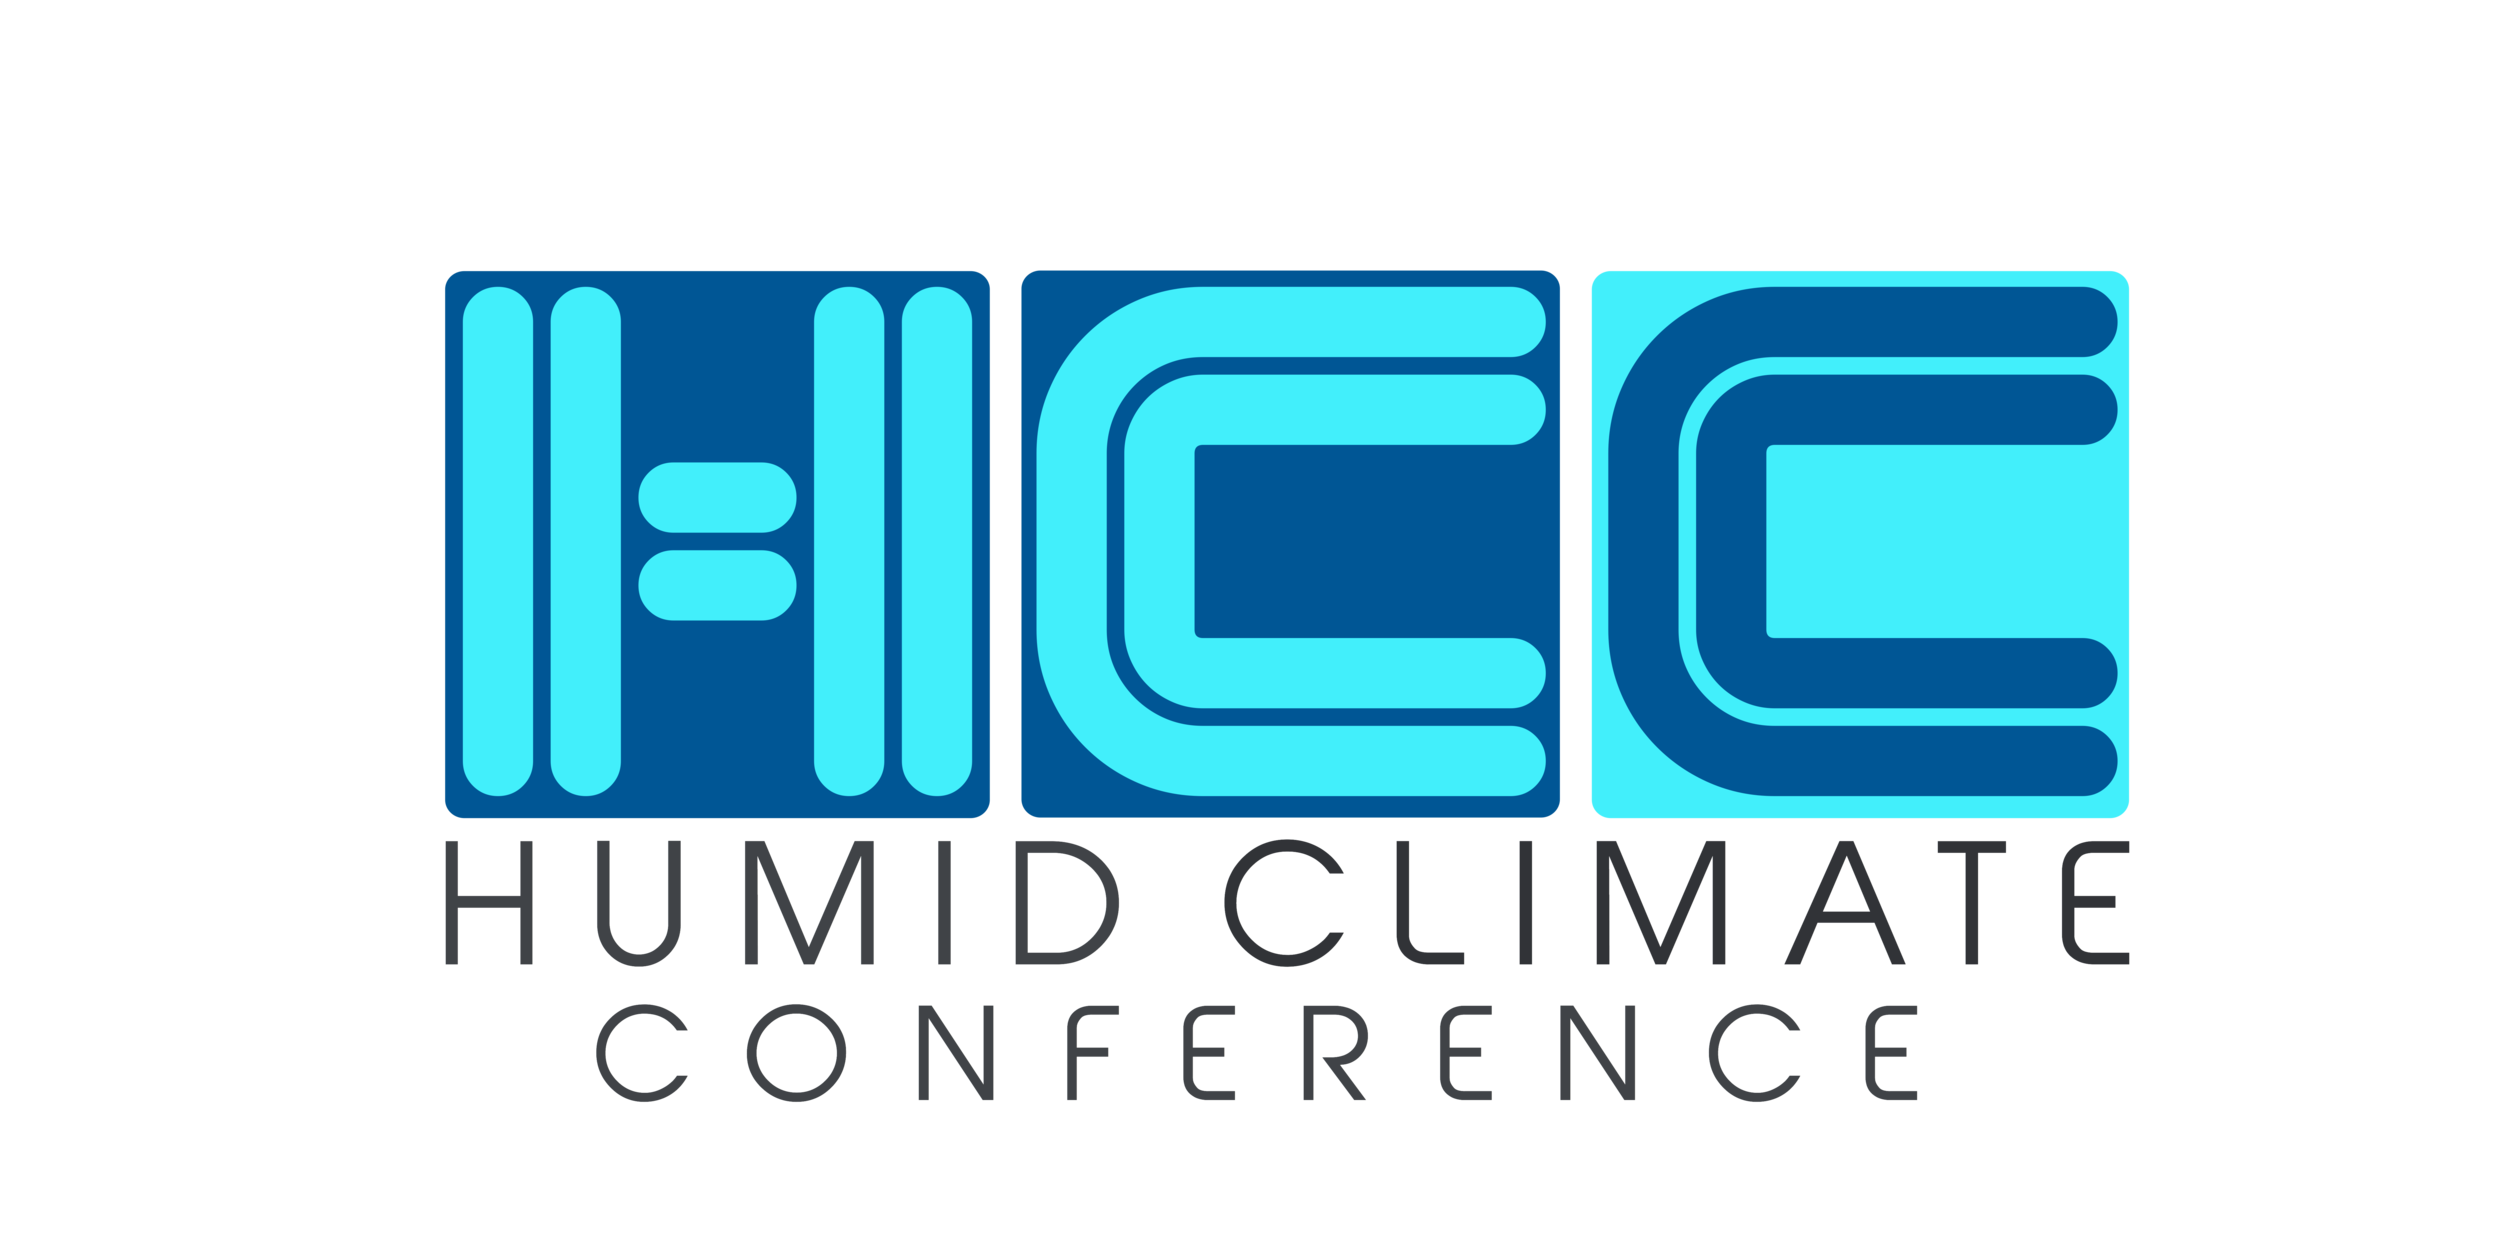 humid+climate+conference+logo.png